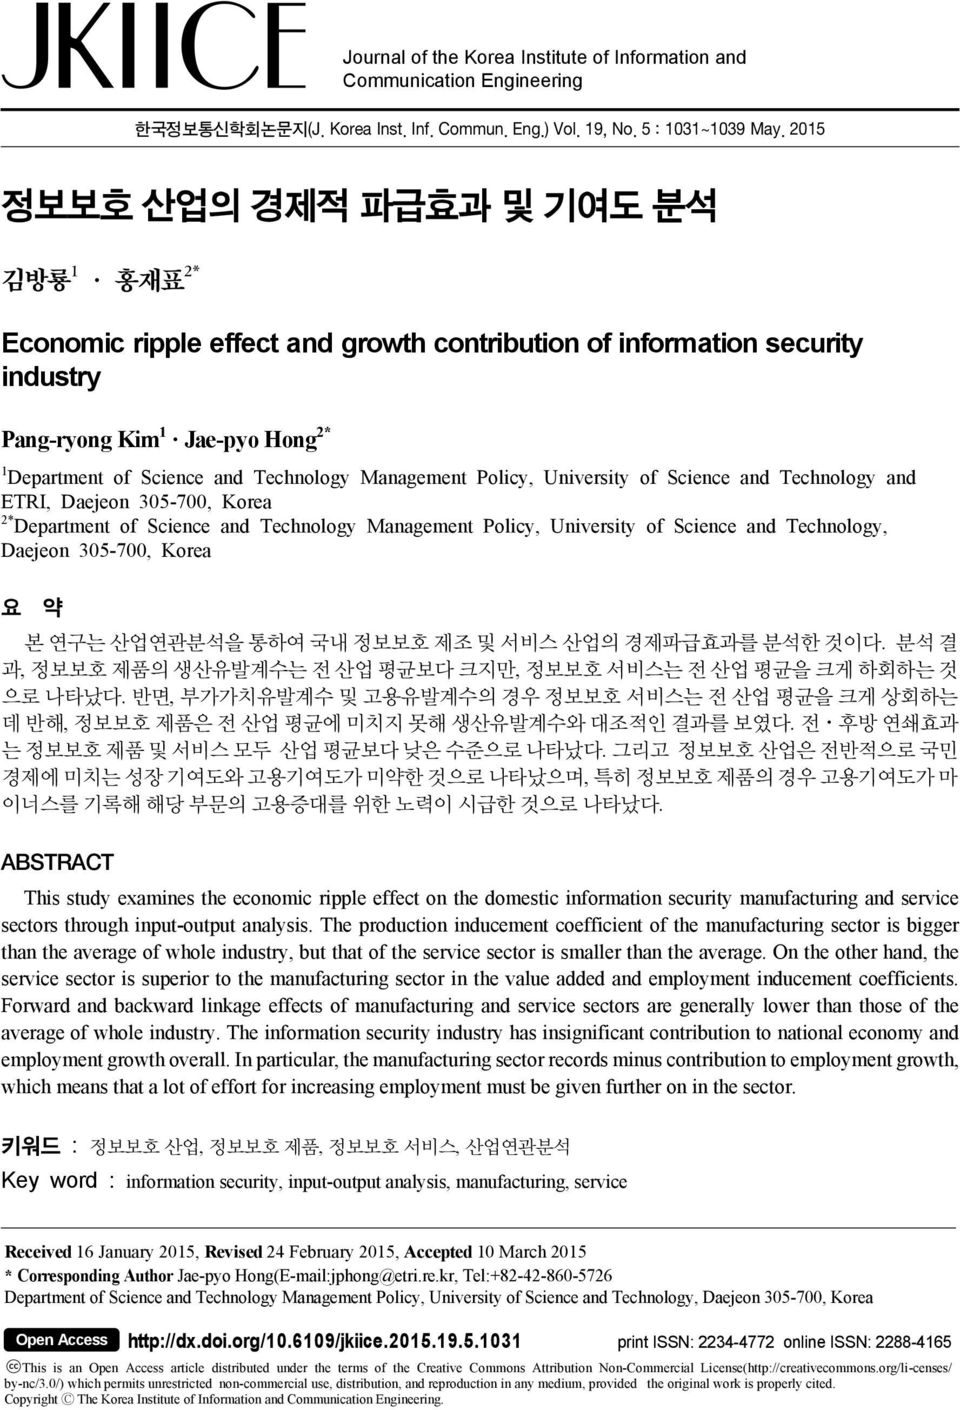 Management Policy, University of Science and Technology and ETRI, Daejeon 305-700, Korea 2* Department of Science and Technology Management Policy, University of Science and Technology, Daejeon